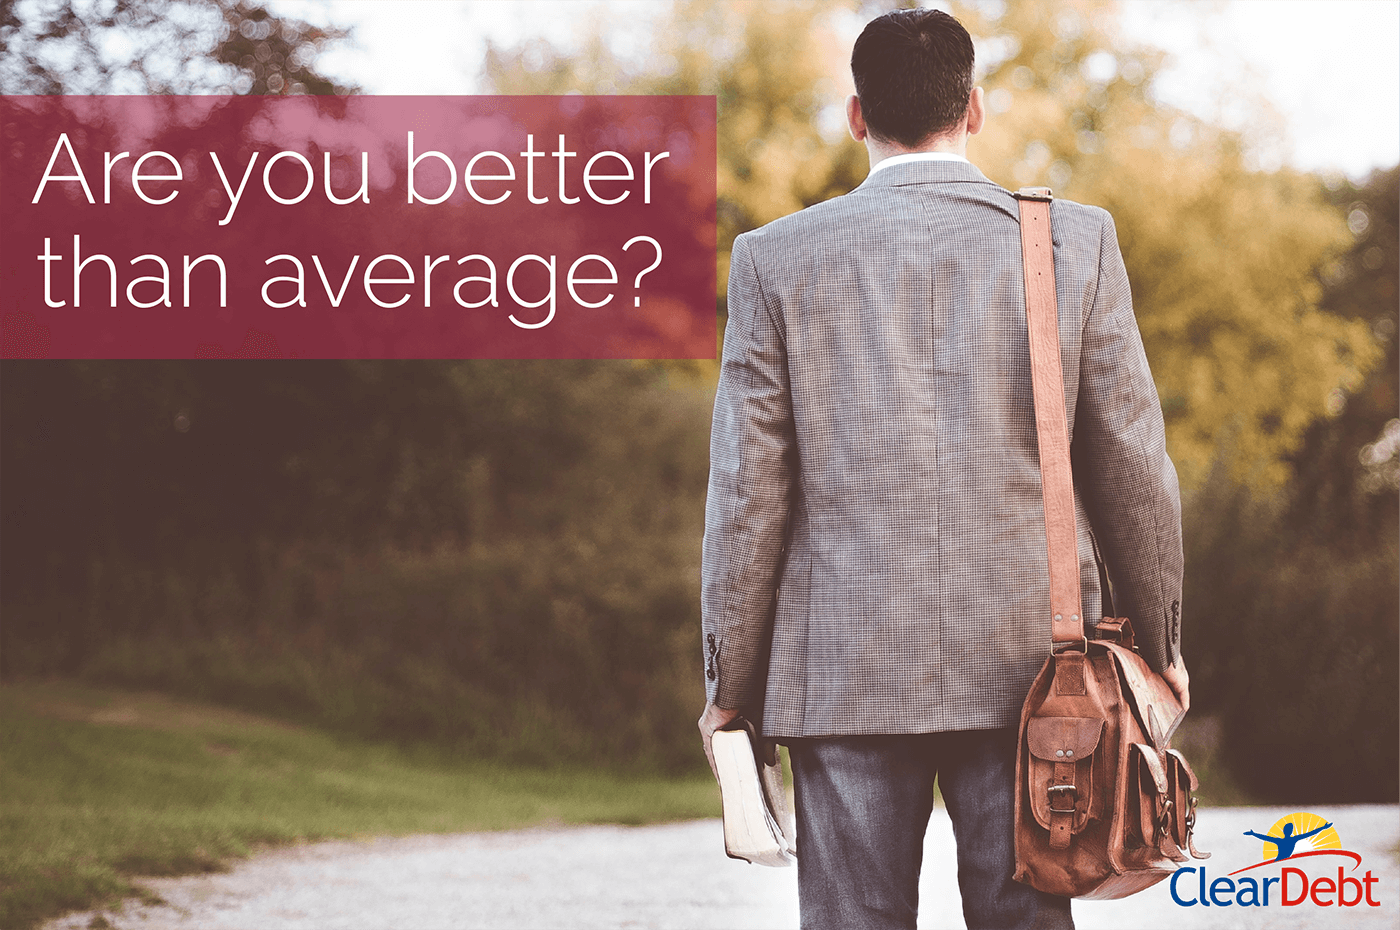 Are you better than average?